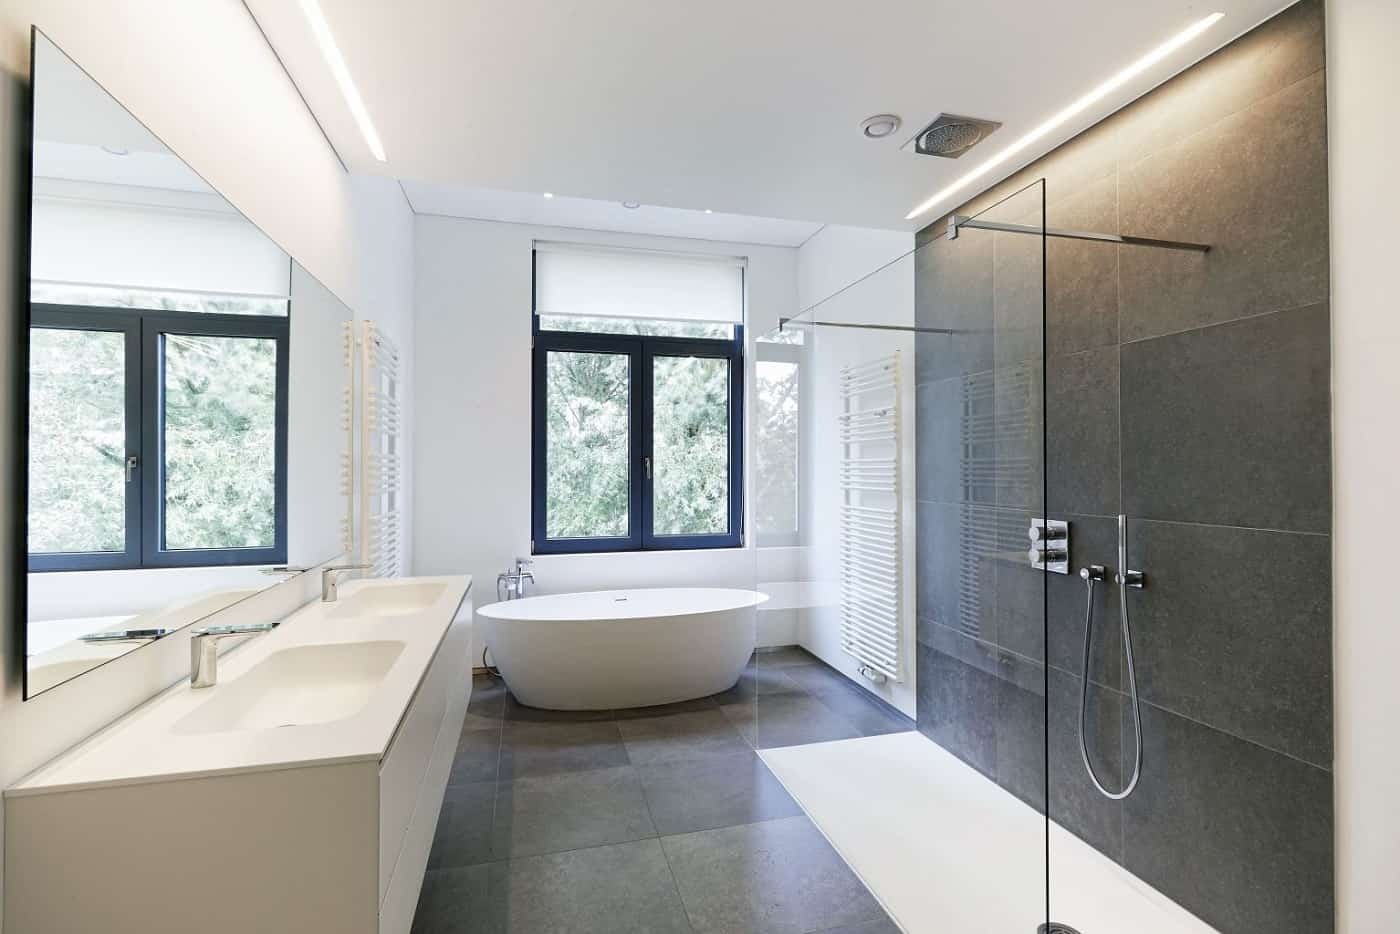 Bathroom renovation service Toronto